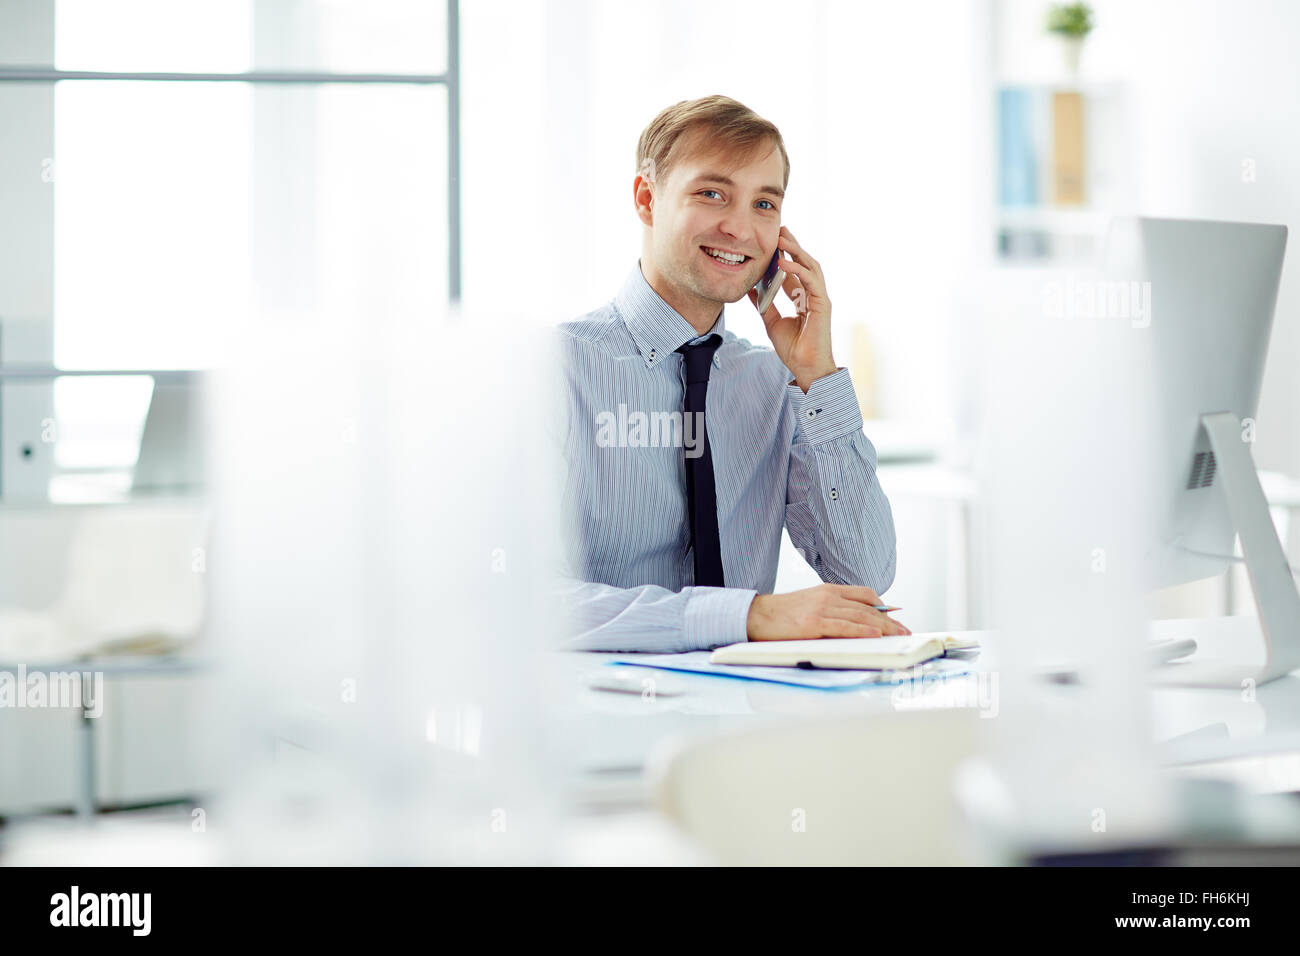 Young businessman speaking on the phone at workplace and looking at camera - Stock Image